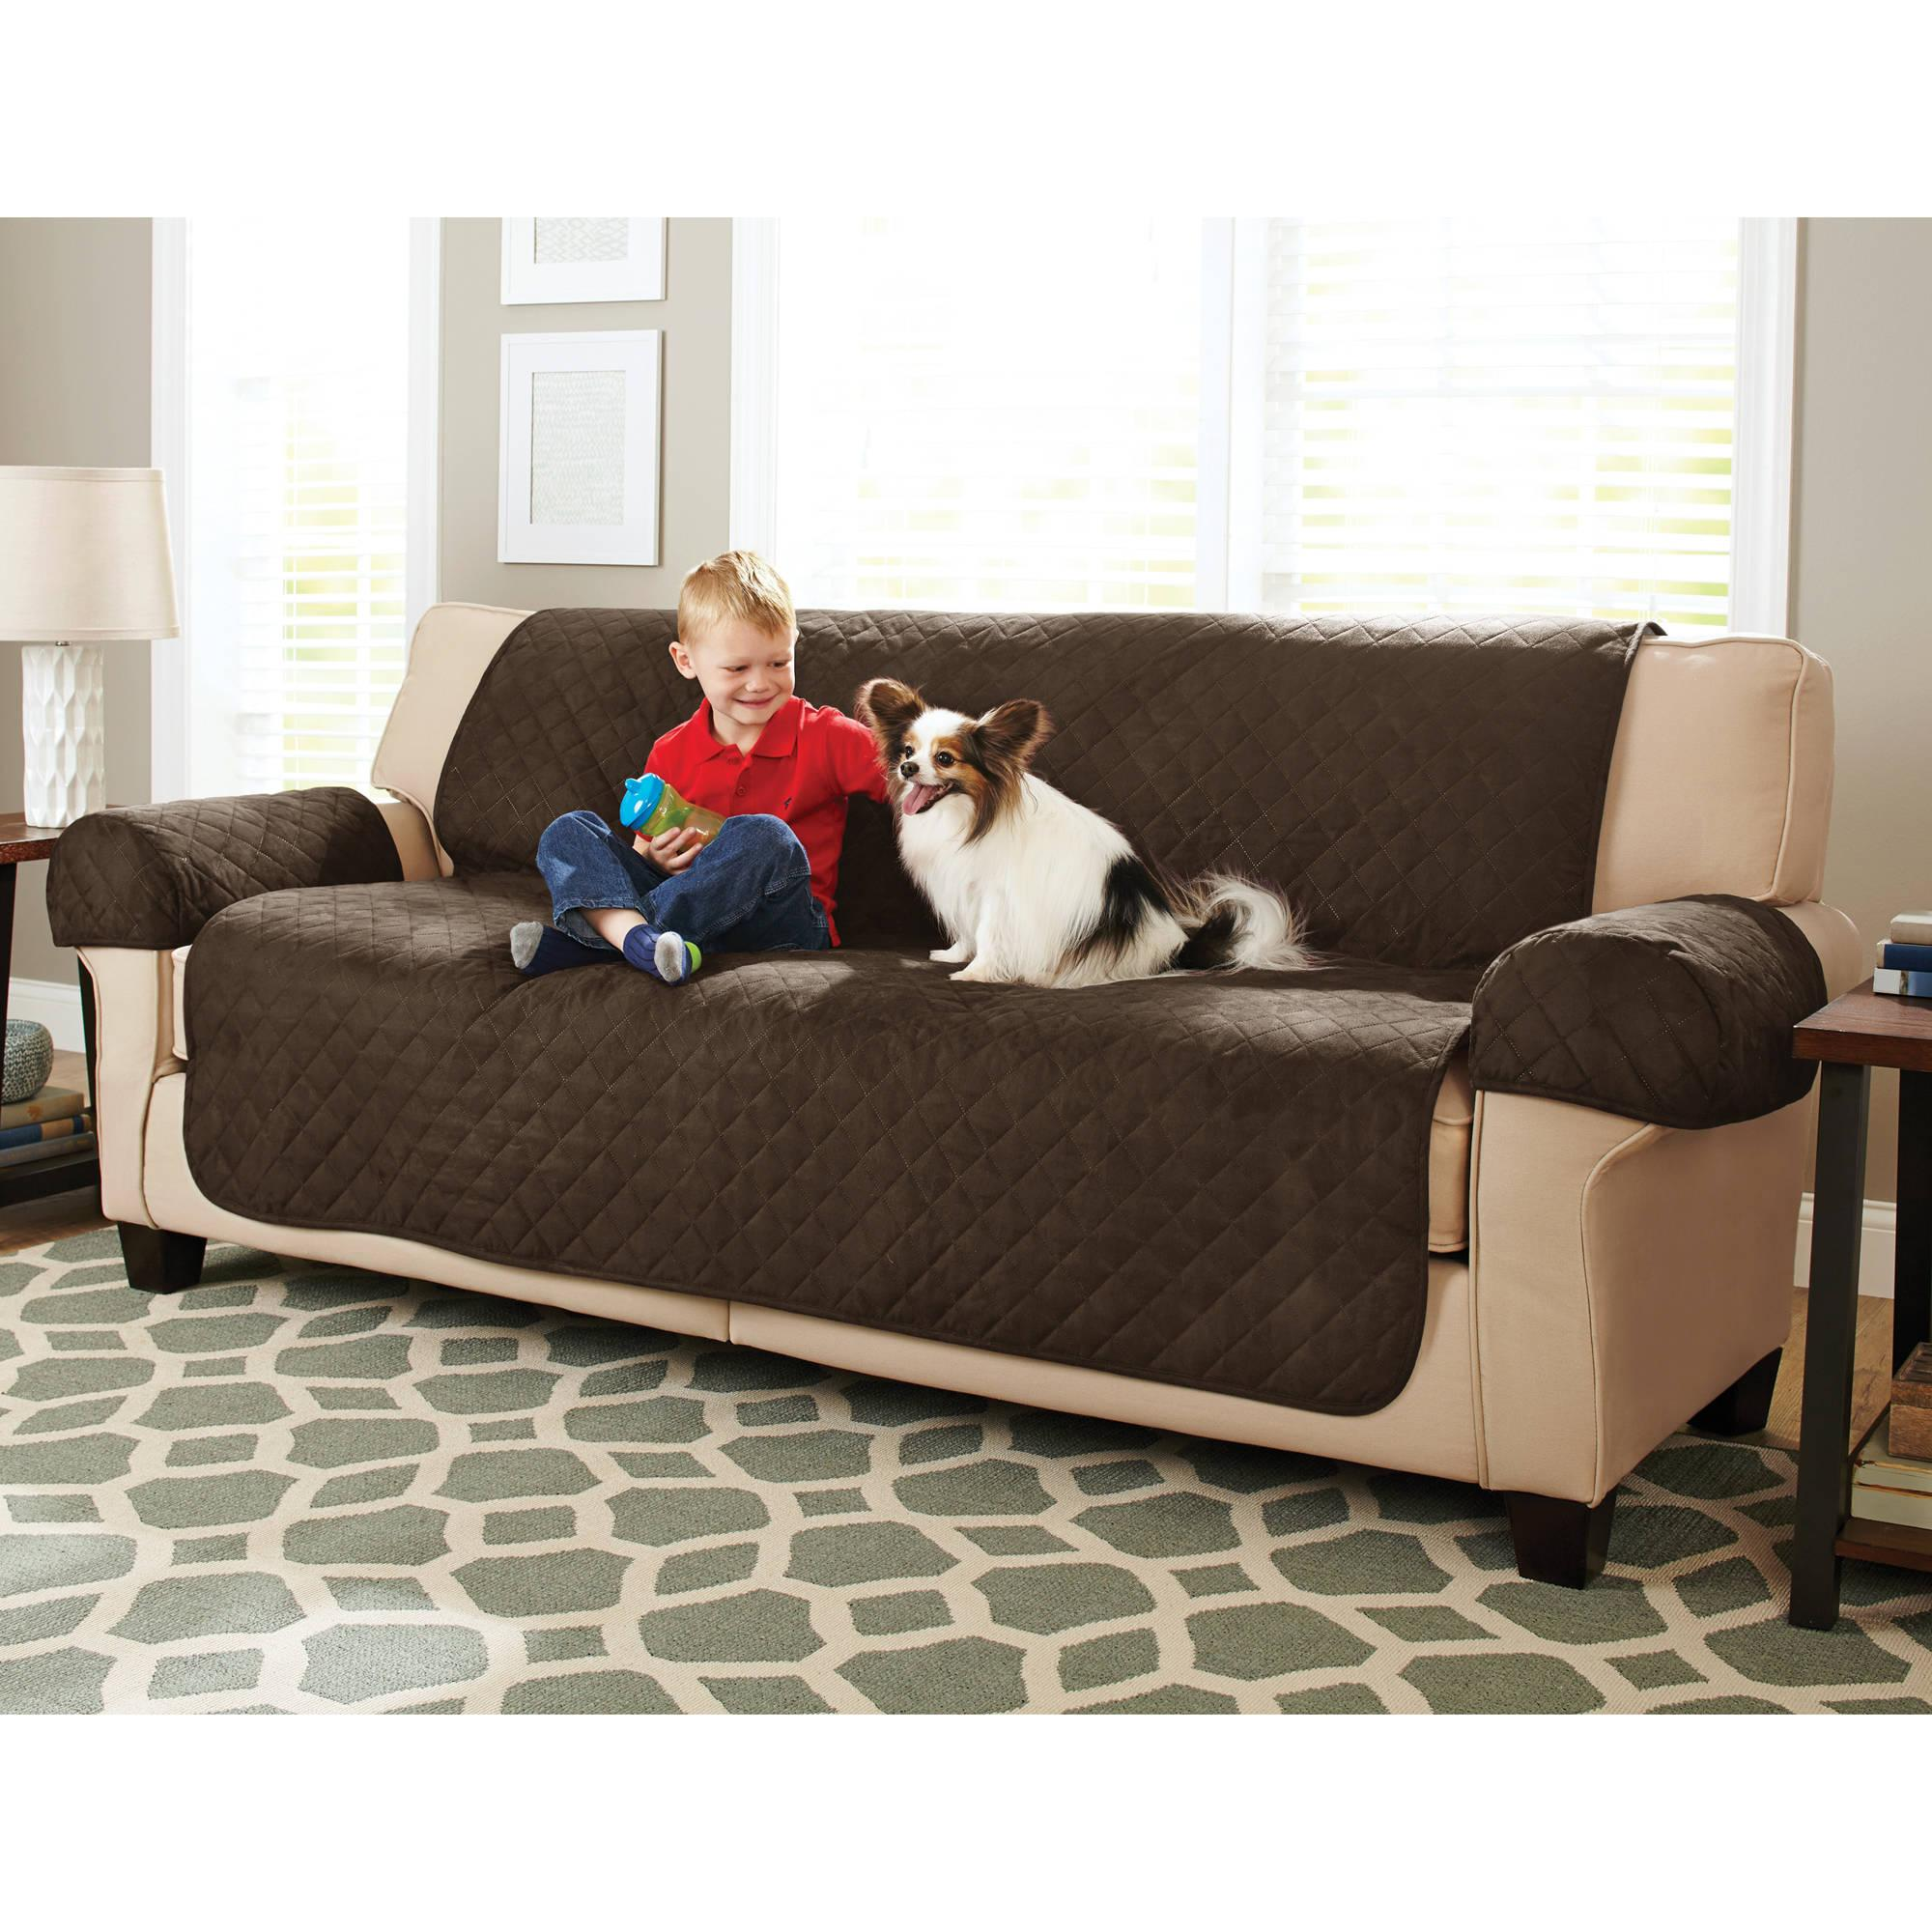 Ideas Furniture Covers Sofas fy Couch Covers For Sectionals